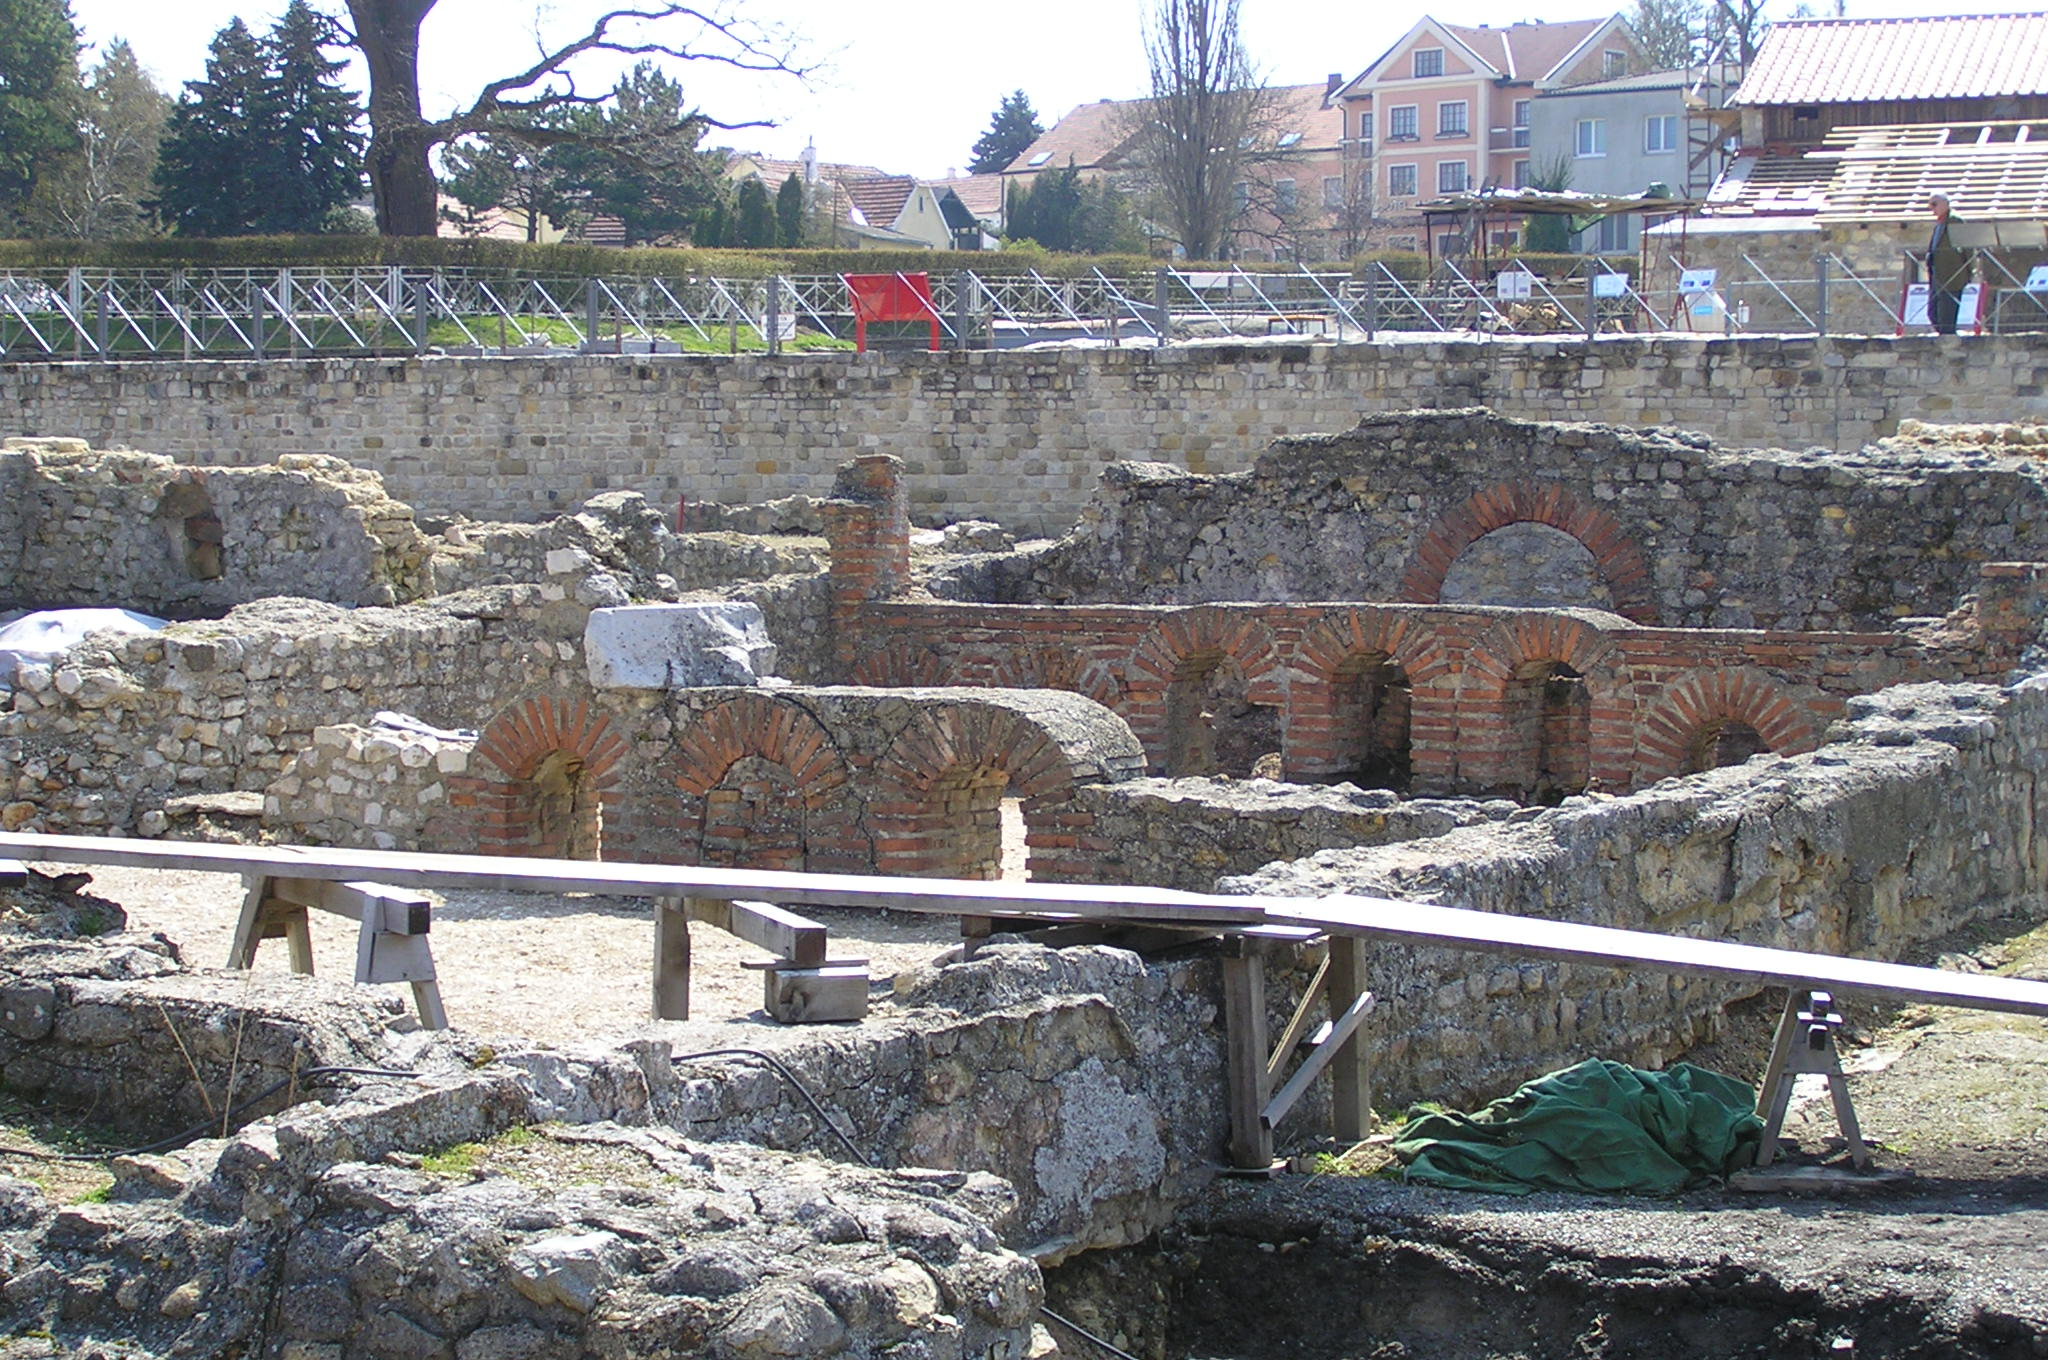 File:Carnuntum Public Bath.jpg - Wikimedia Commons